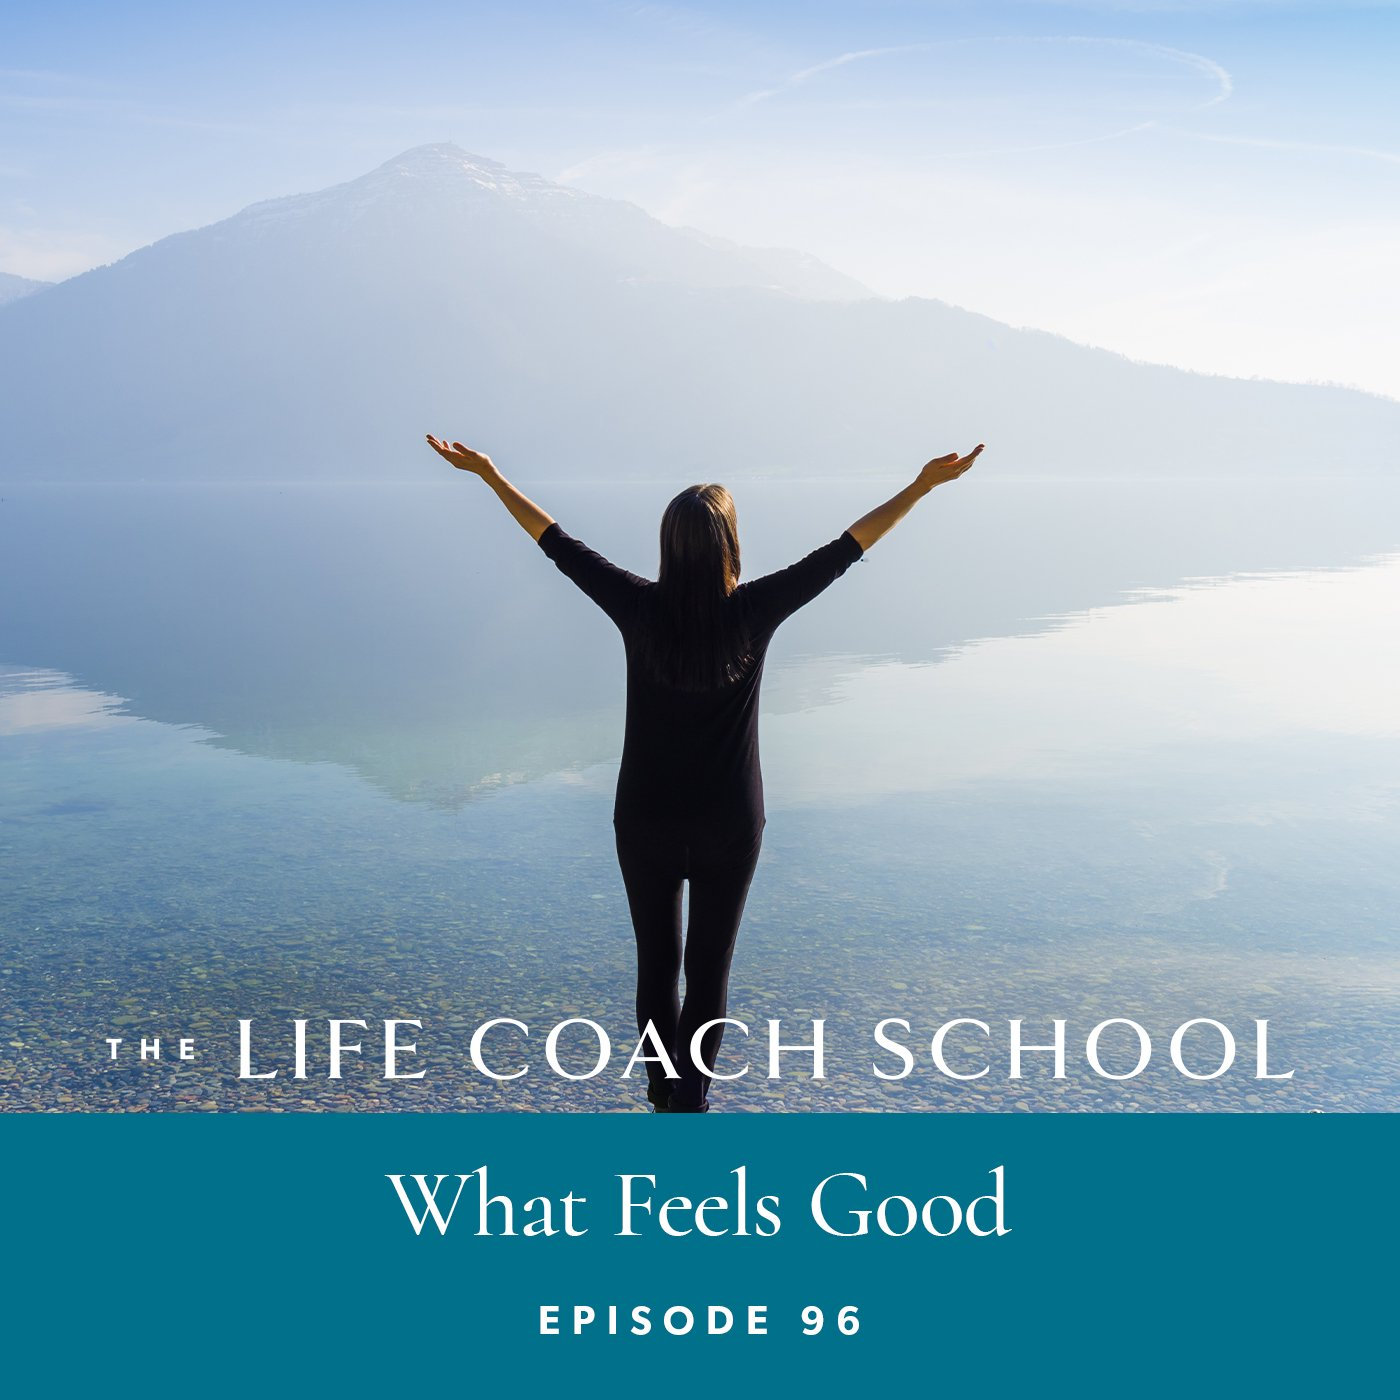 The Life Coach School Podcast with Brooke Castillo | Episode 96 | What Feels Good